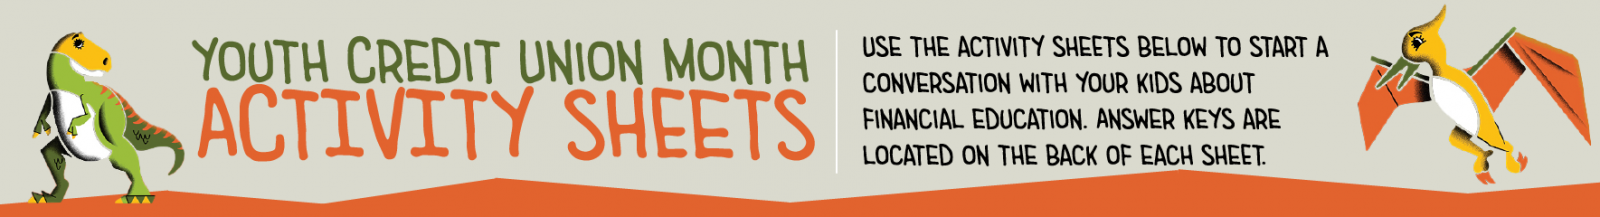 Youth Credit Union Month - Activity Sheets